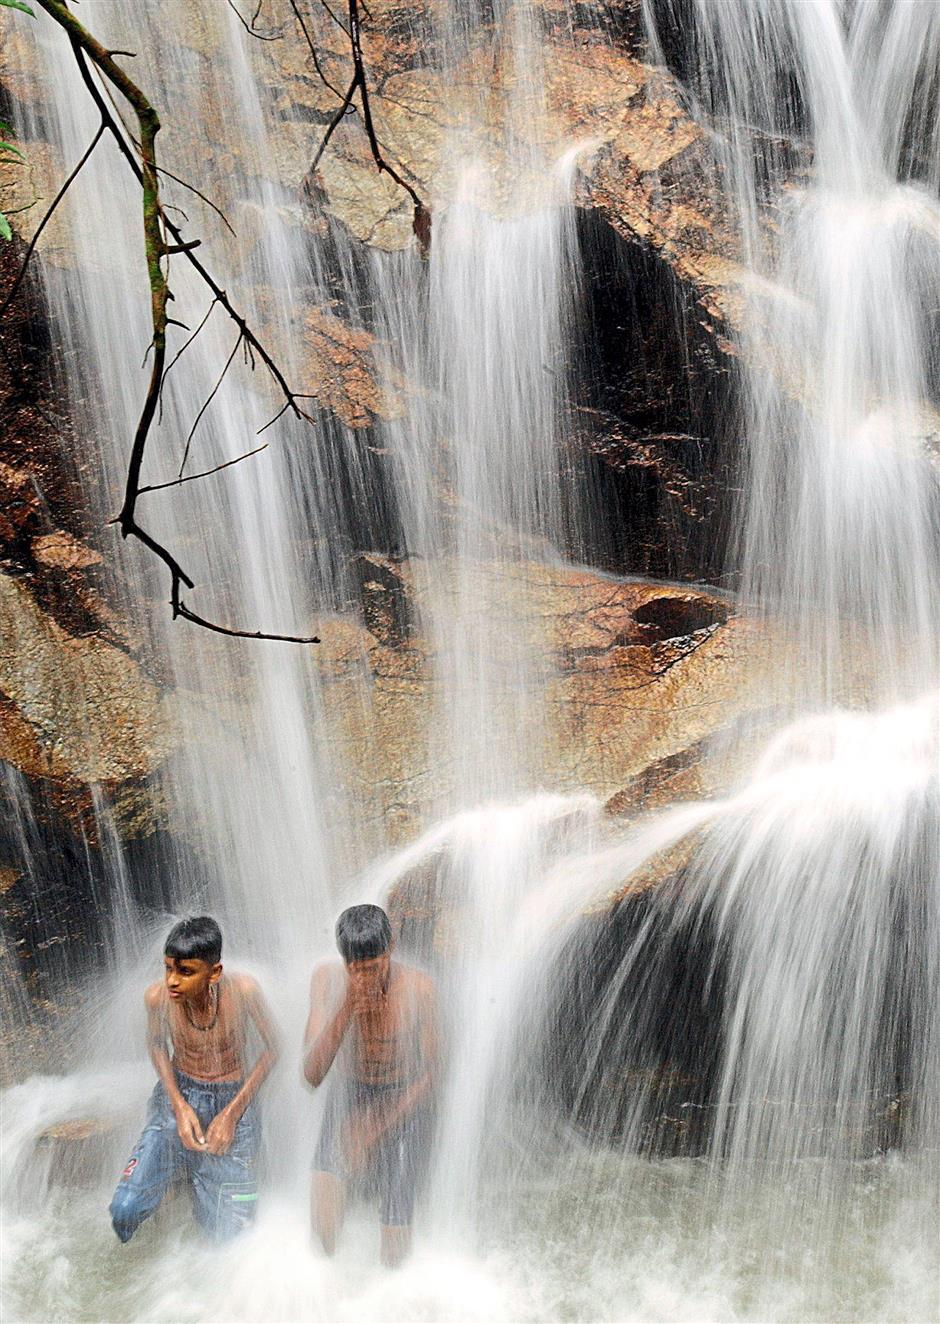 Bathing in a waterfall at Taman Rimba Kanching, Rawang. Waterfalls and clear streams have always been an attraction for Malaysians, but with heavy development, we have to double our efforts to protect the environment. - AZHAR MAHFOF/The Star *** Local Caption *** Cool shower: Two boys feeling the full force of the waterfall at Taman Rimba Kanching in Rawang.